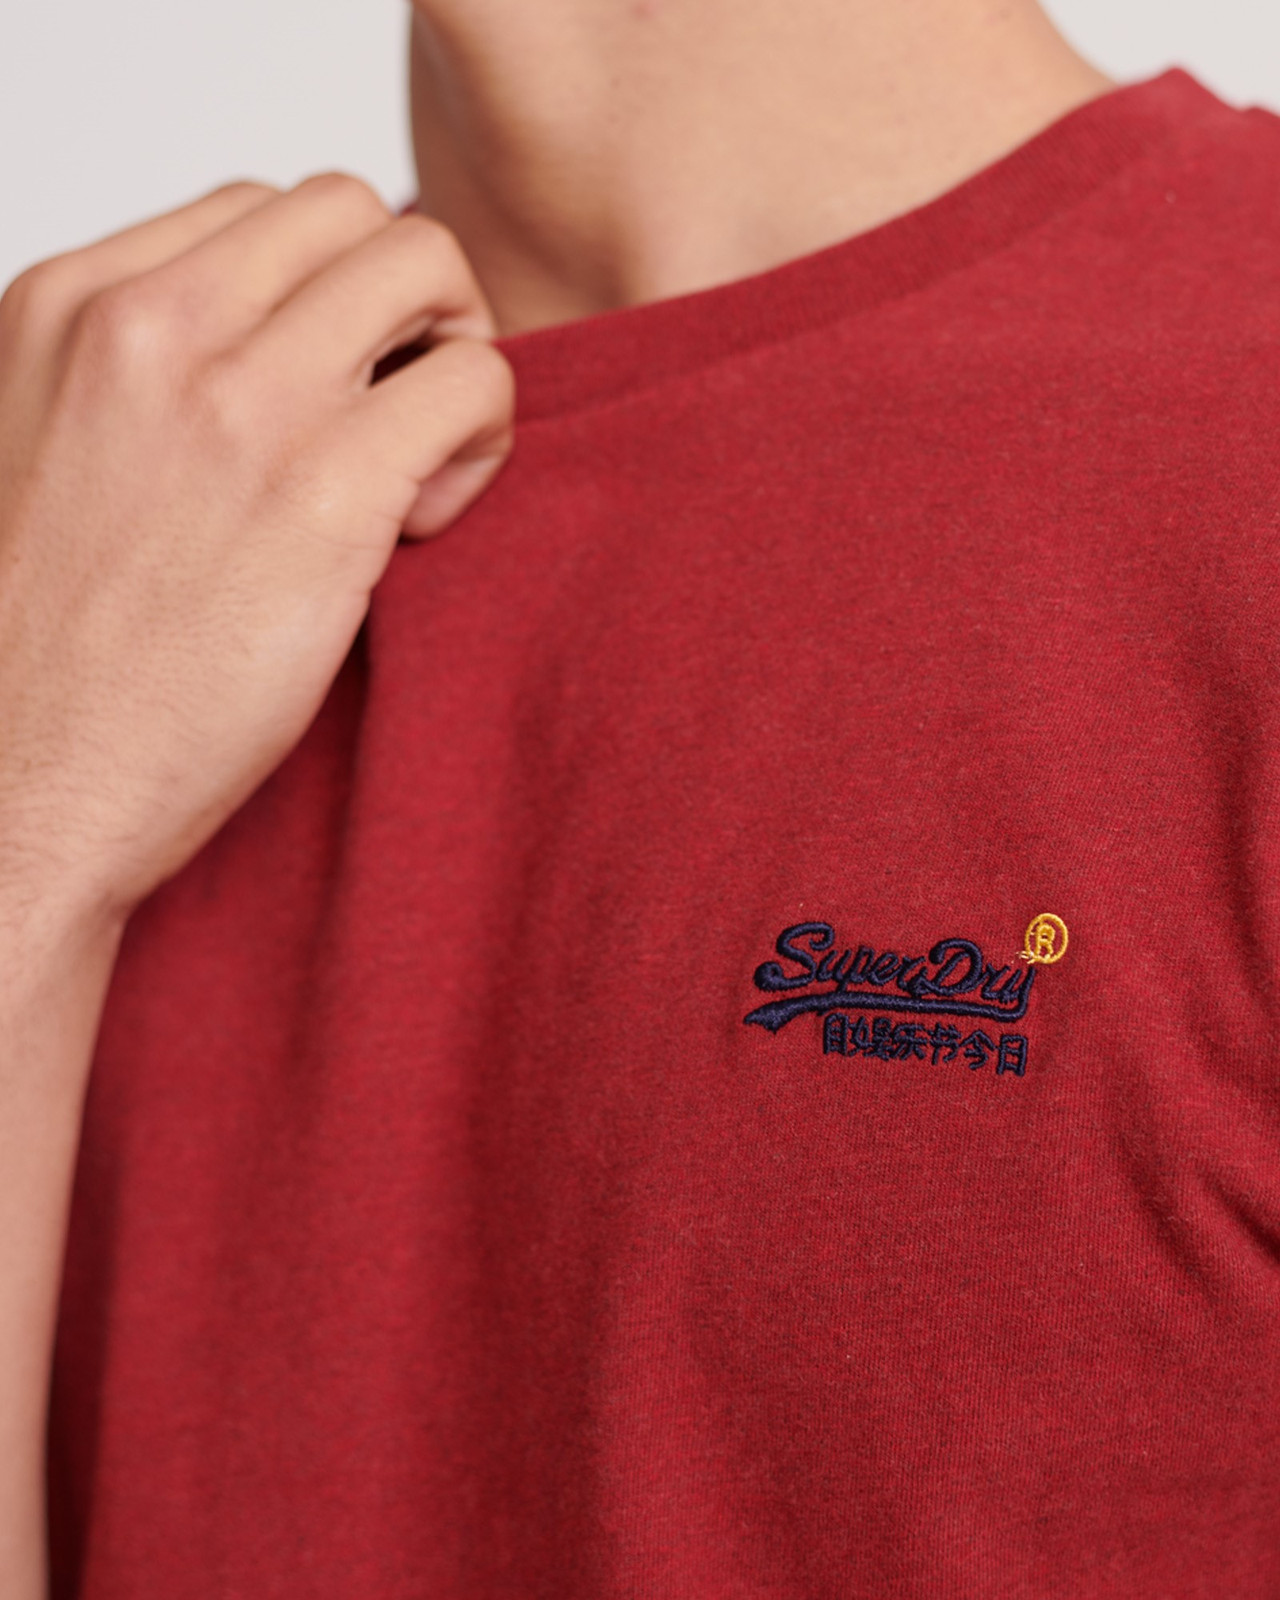 Superdry Mens Orange Label Vintage Embroidery Tee Red Plain T Shirts 4